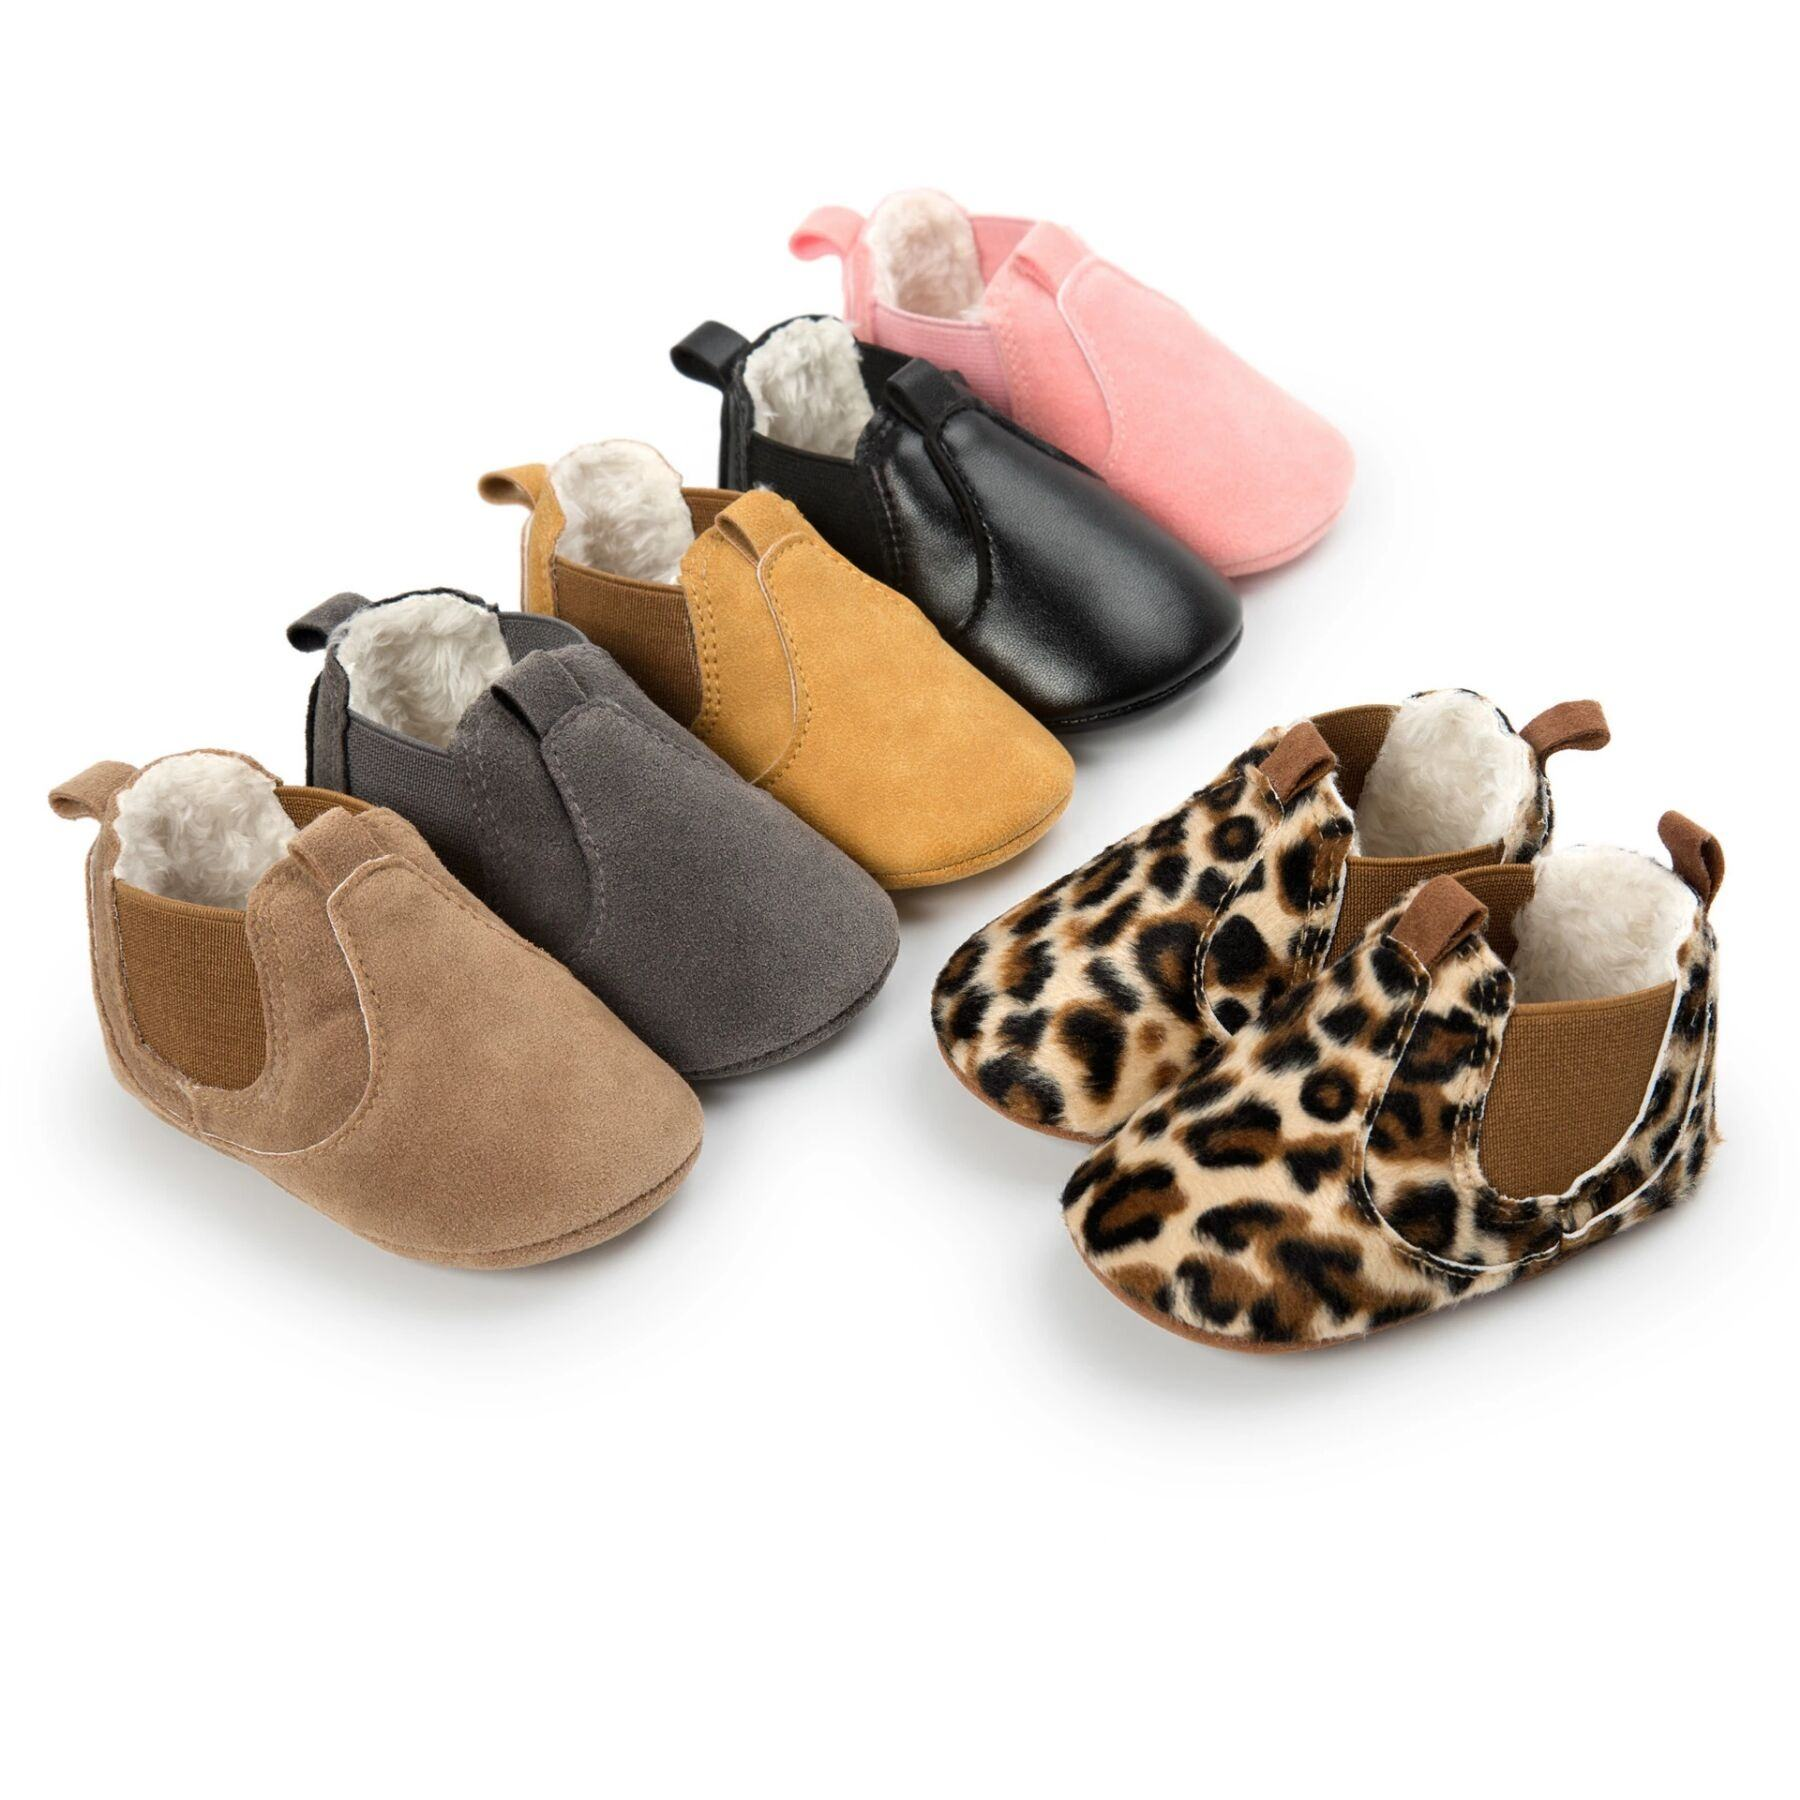 Winter Fashion Toddler Warm Baby Chelsea Boots Brown Boy Infant Booties